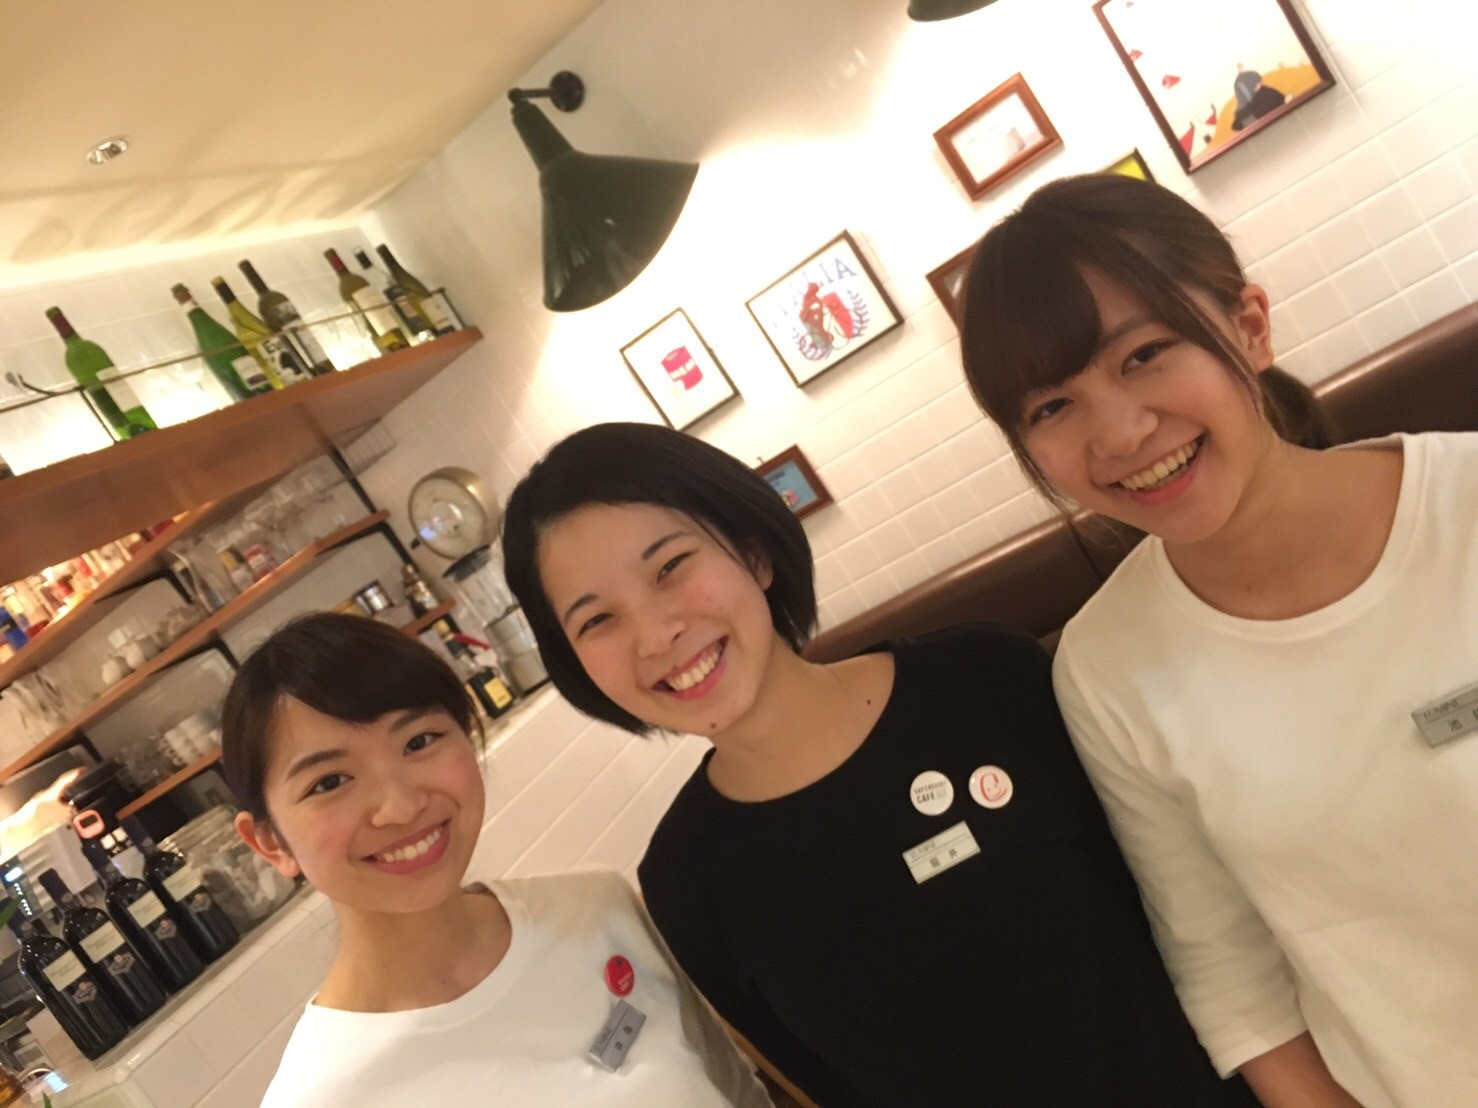 SAY CHEESE! CAFE ルミネ横浜店 のアルバイト情報